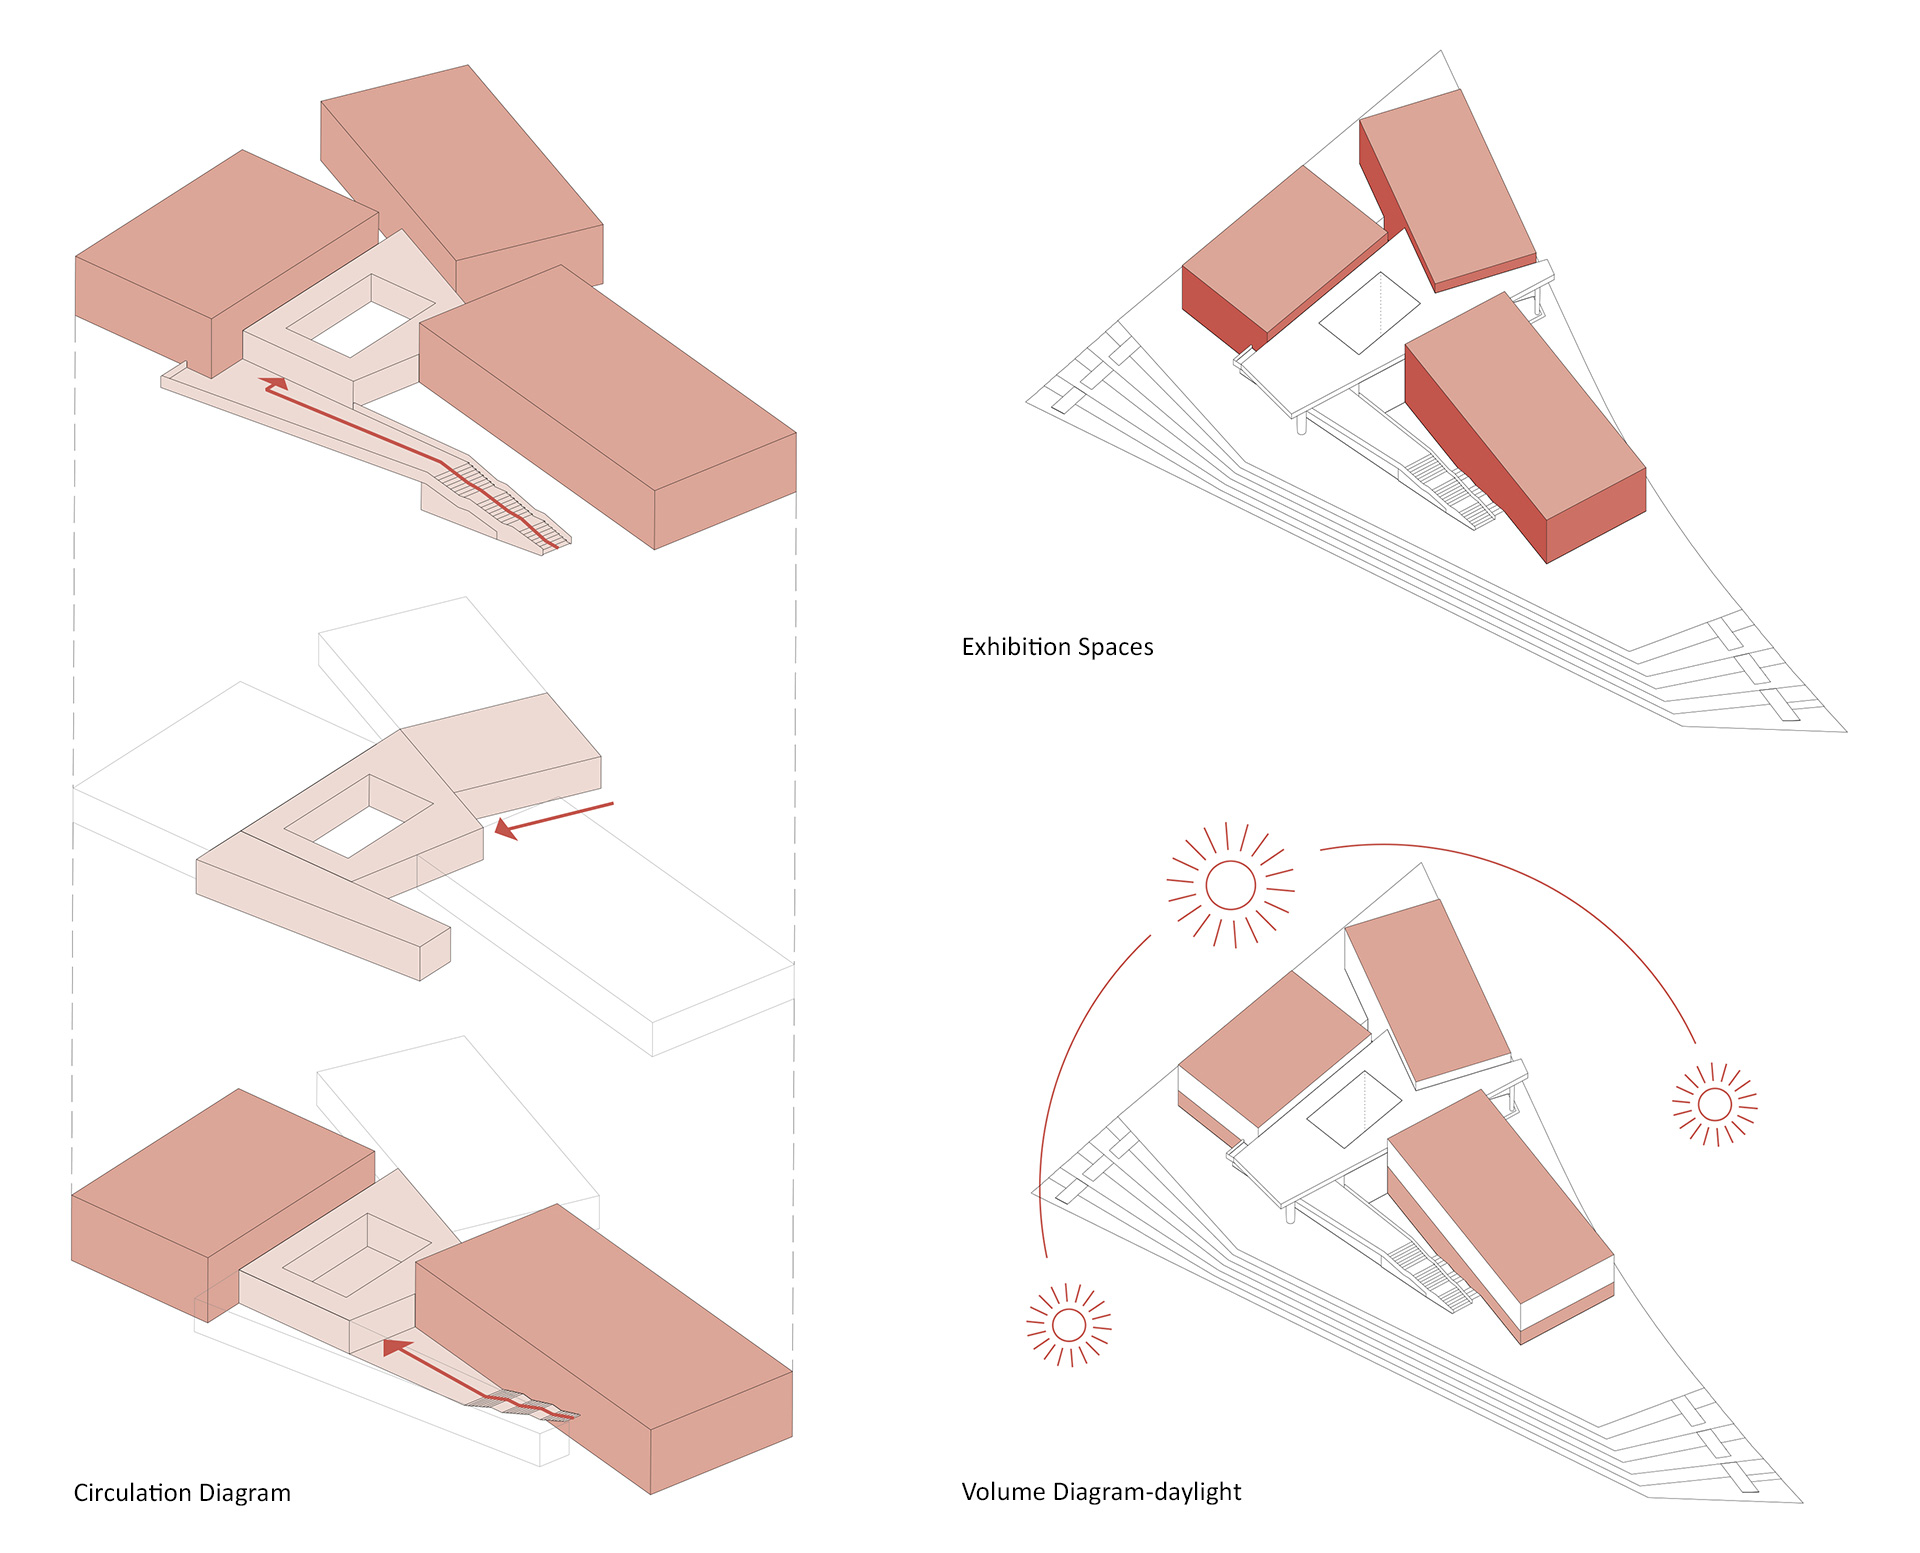 (Clockwise from left) Circulation Diagram, the three exhibition volumes, movement of the sun and daylight at the exhibition spaces | West Bund Museum | David Chipperfield Architects Berlin and Shanghai| STIRworld